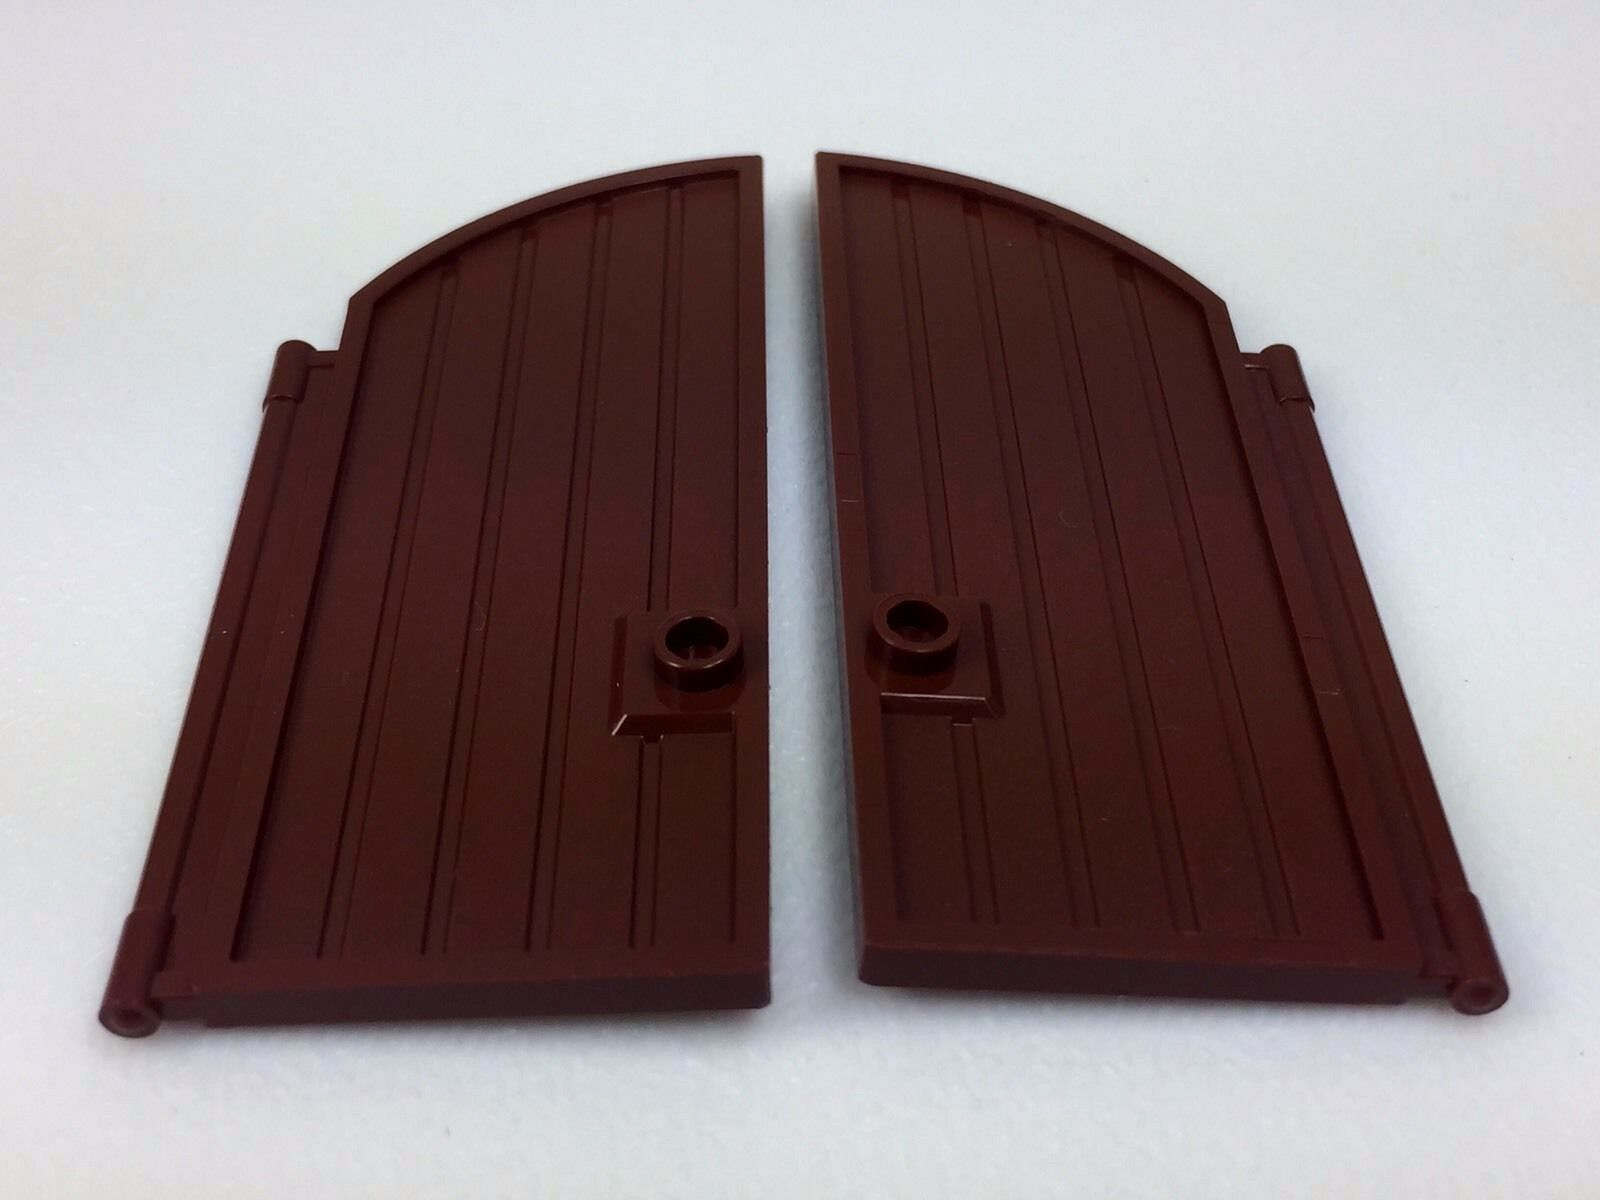 LEGO 2x Lot Brown Curved Top Arch Castle Door 1 x 5 x 10 8376 6081 6059 6090